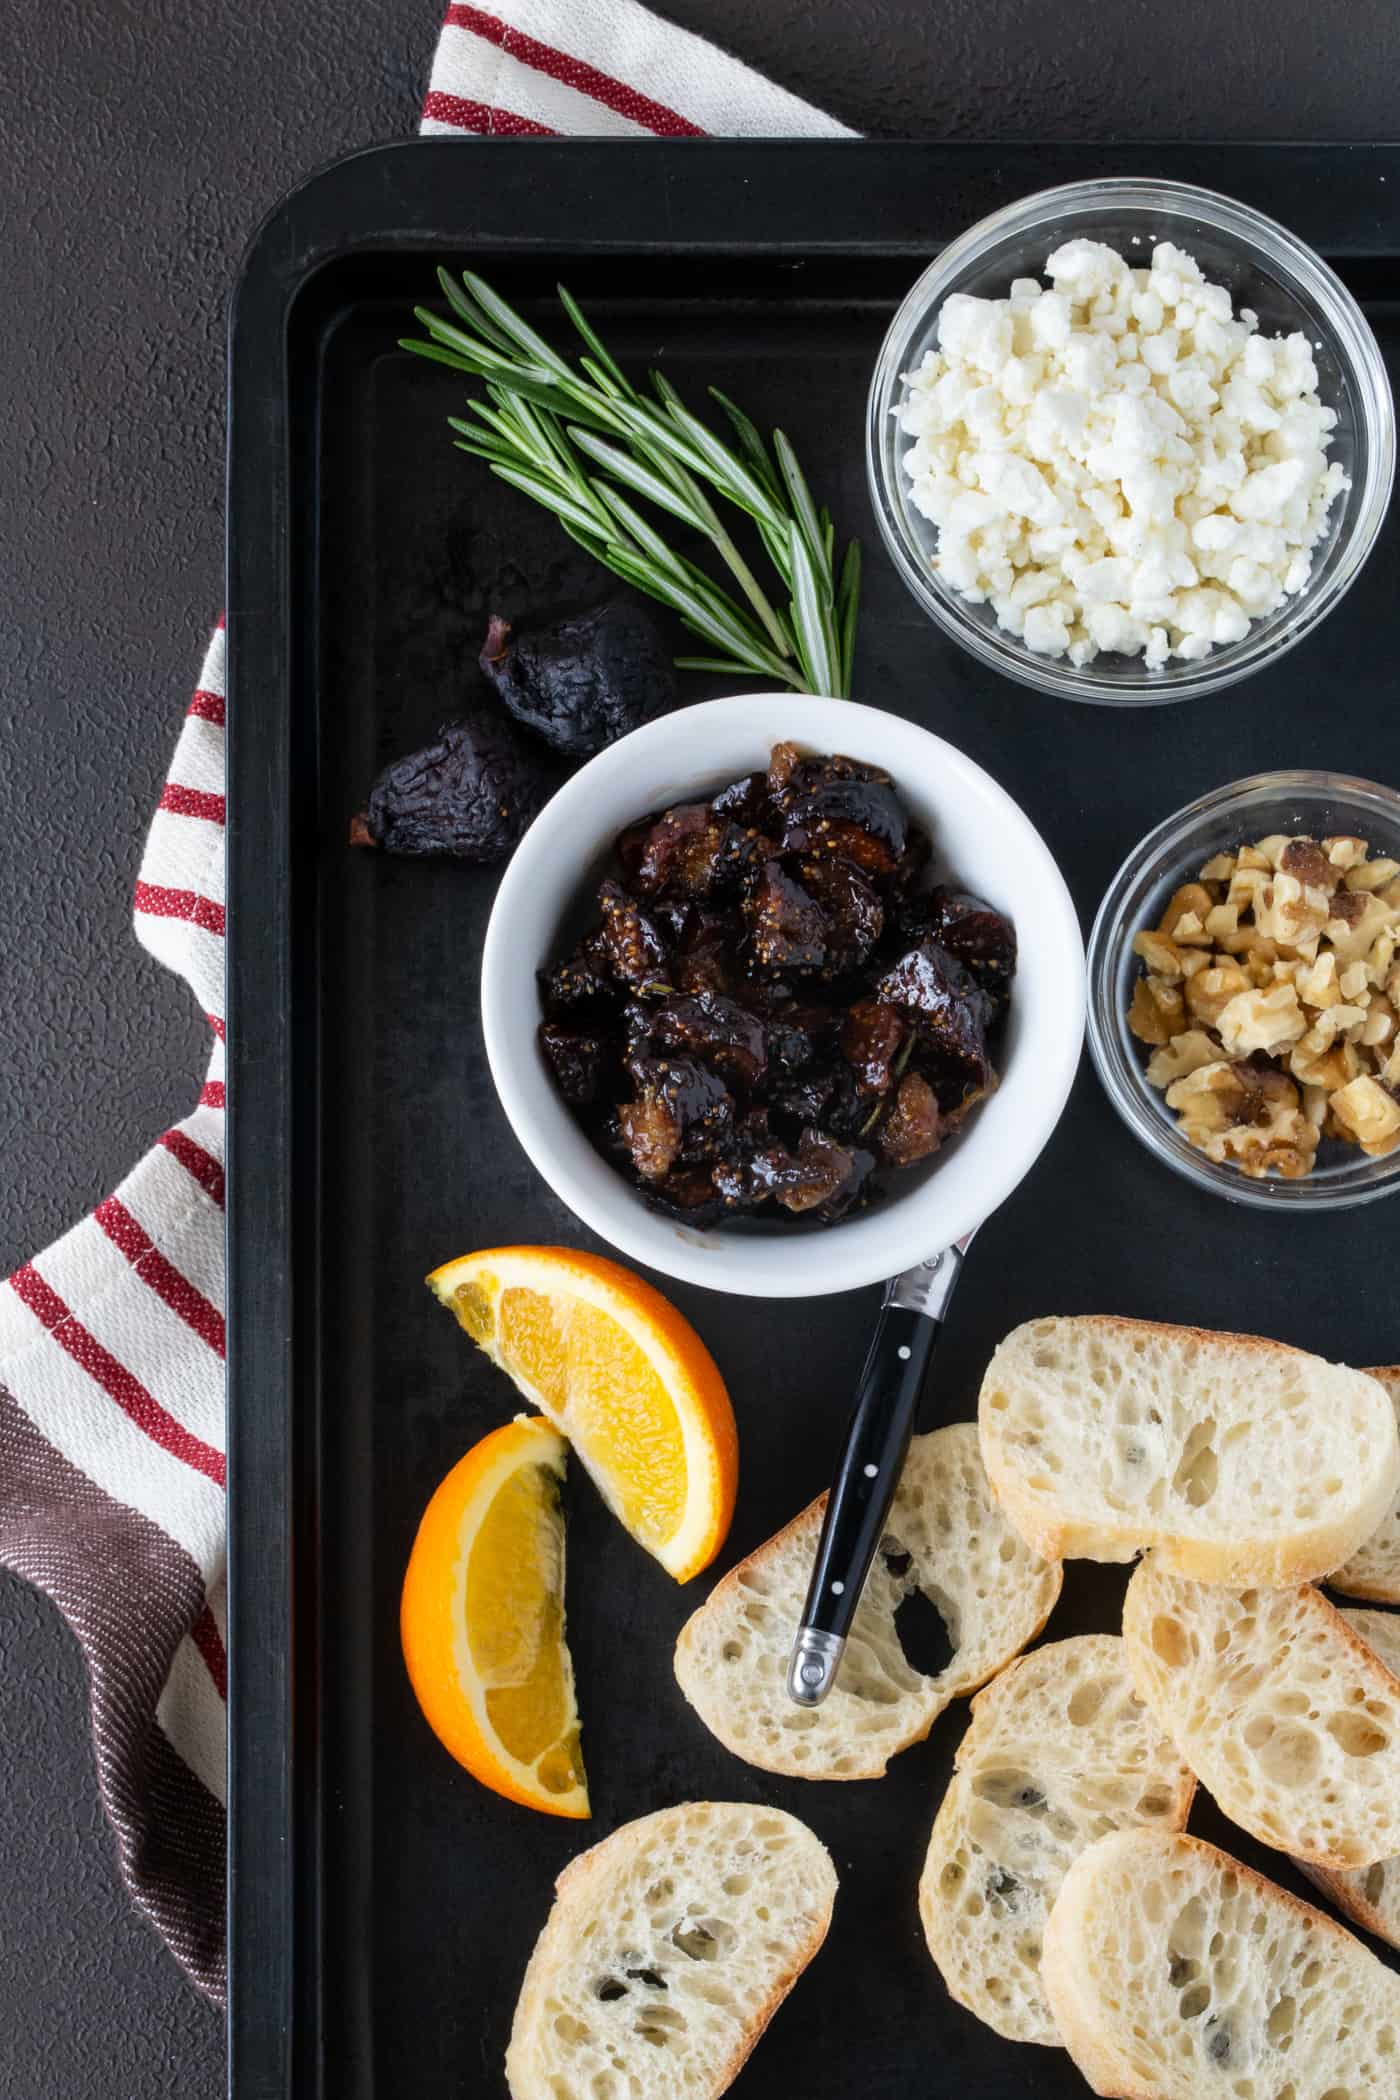 Ingredients for Fig and Goat Cheese Bruschetta on a sheet pan, including black mission figs, walnuts, goat cheese, oranges, baguette slices and fresh rosemary.